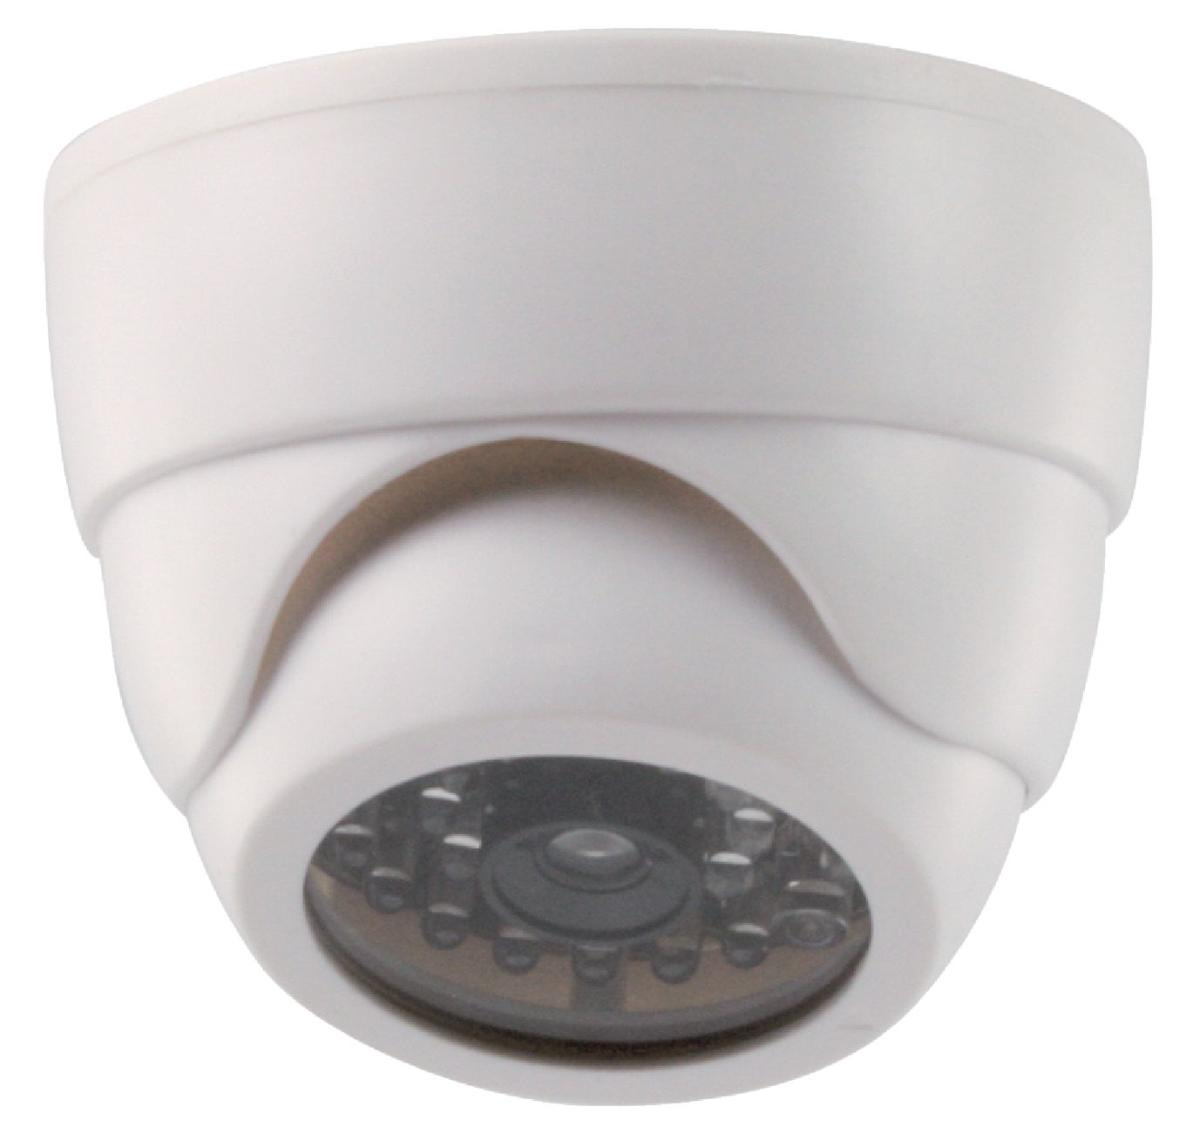 Camera dome cctv reglable factice d'interieur kíni